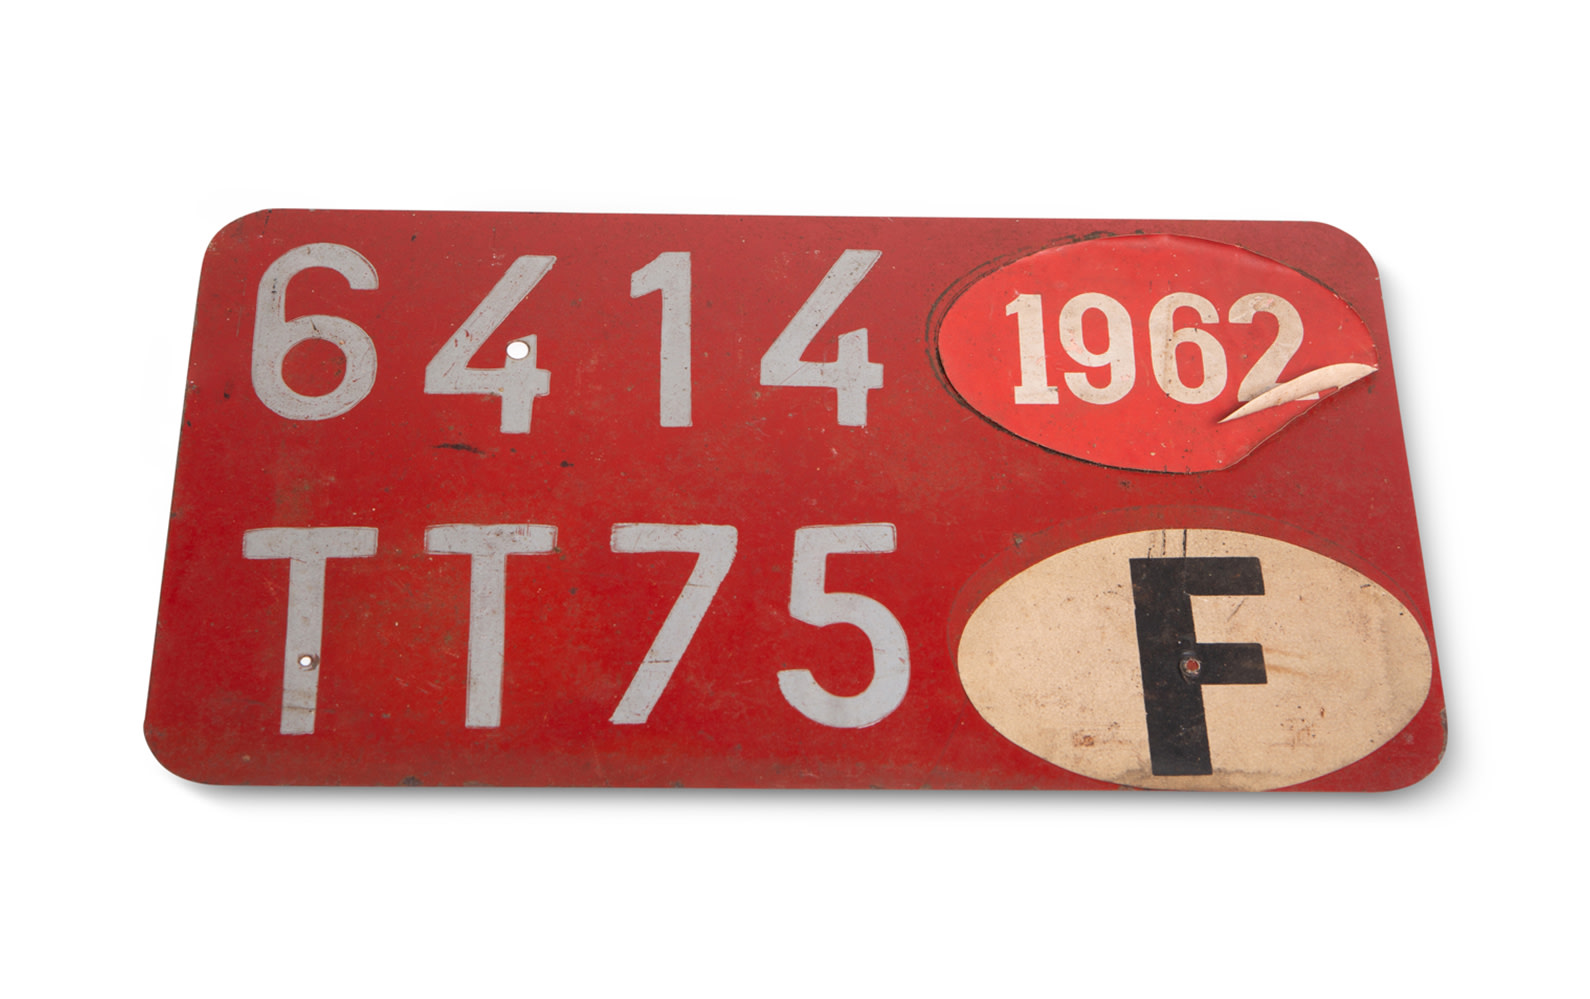 1962 French License Plate